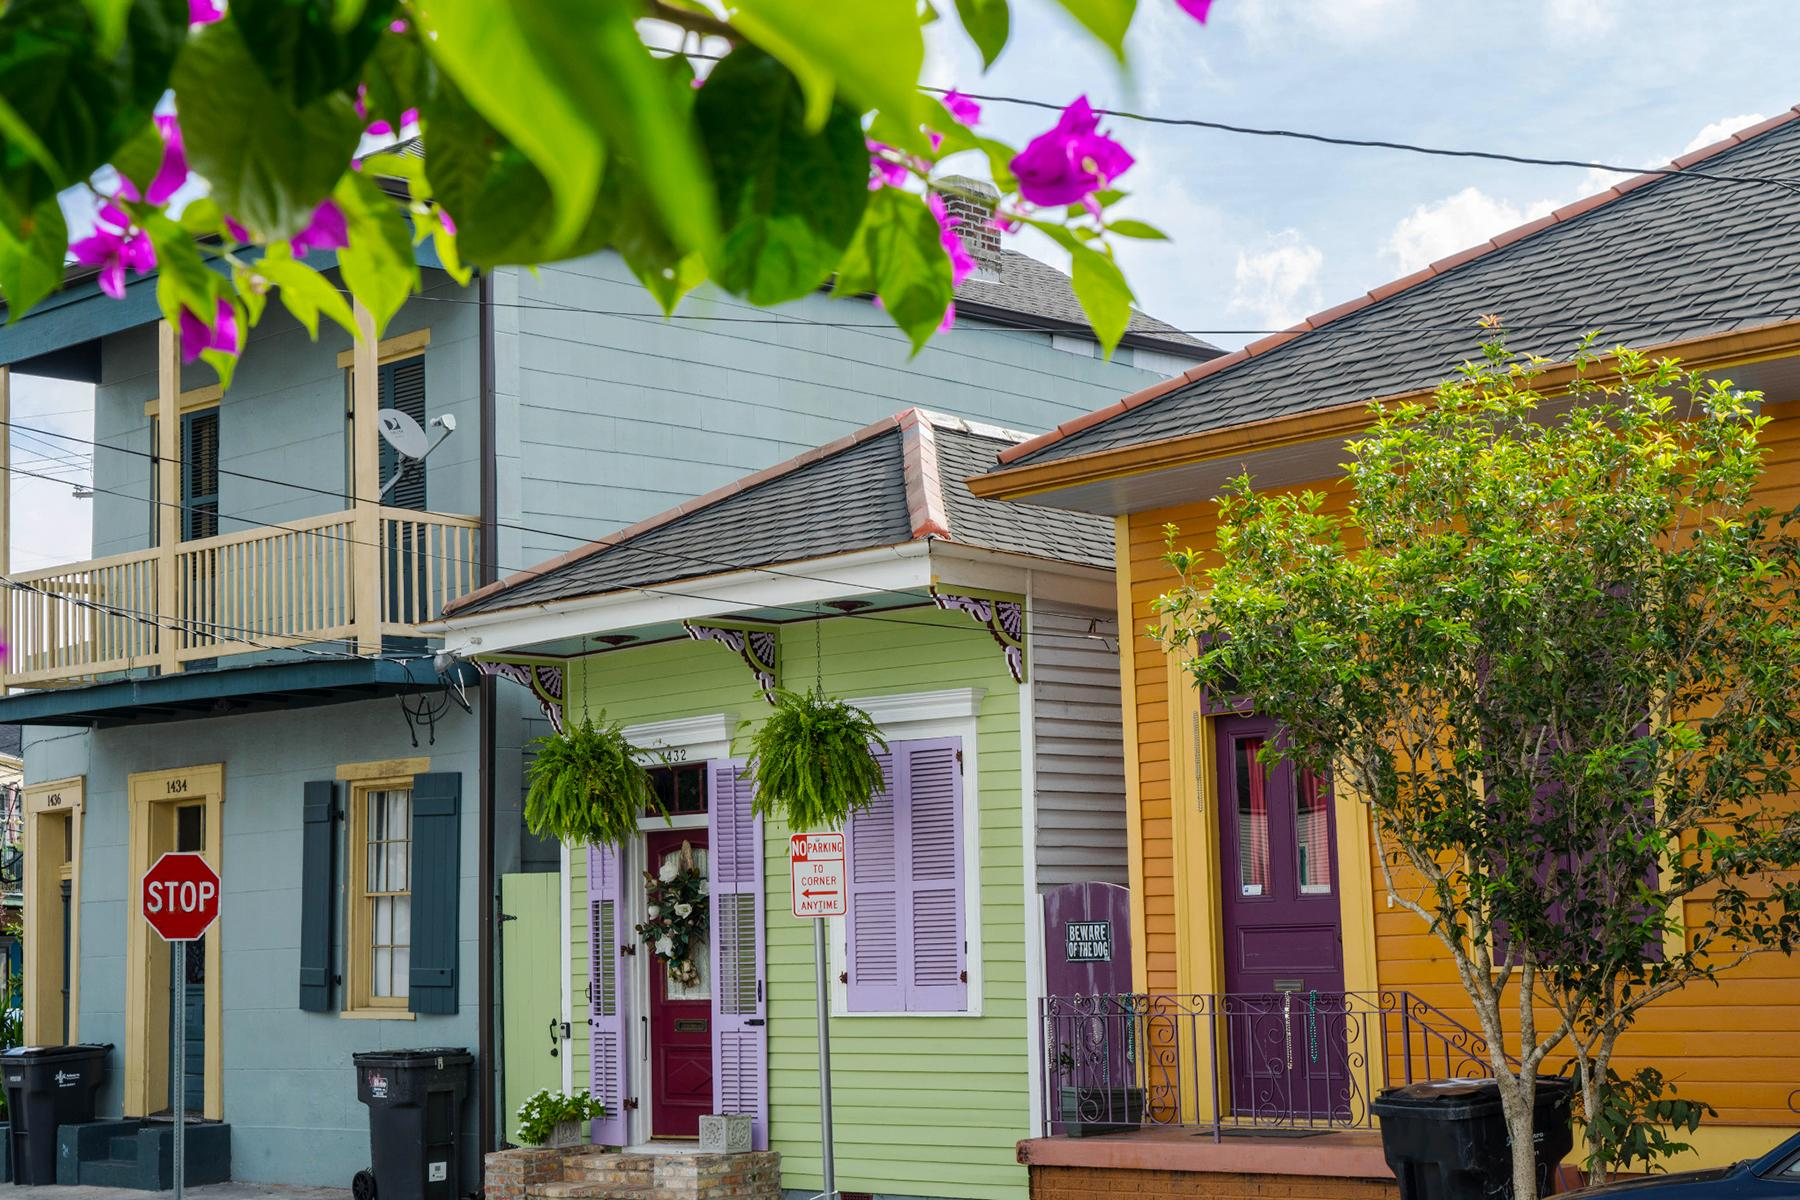 Get Out of The French Quarter to Discover This Much Cooler New Orleans Neighborhood